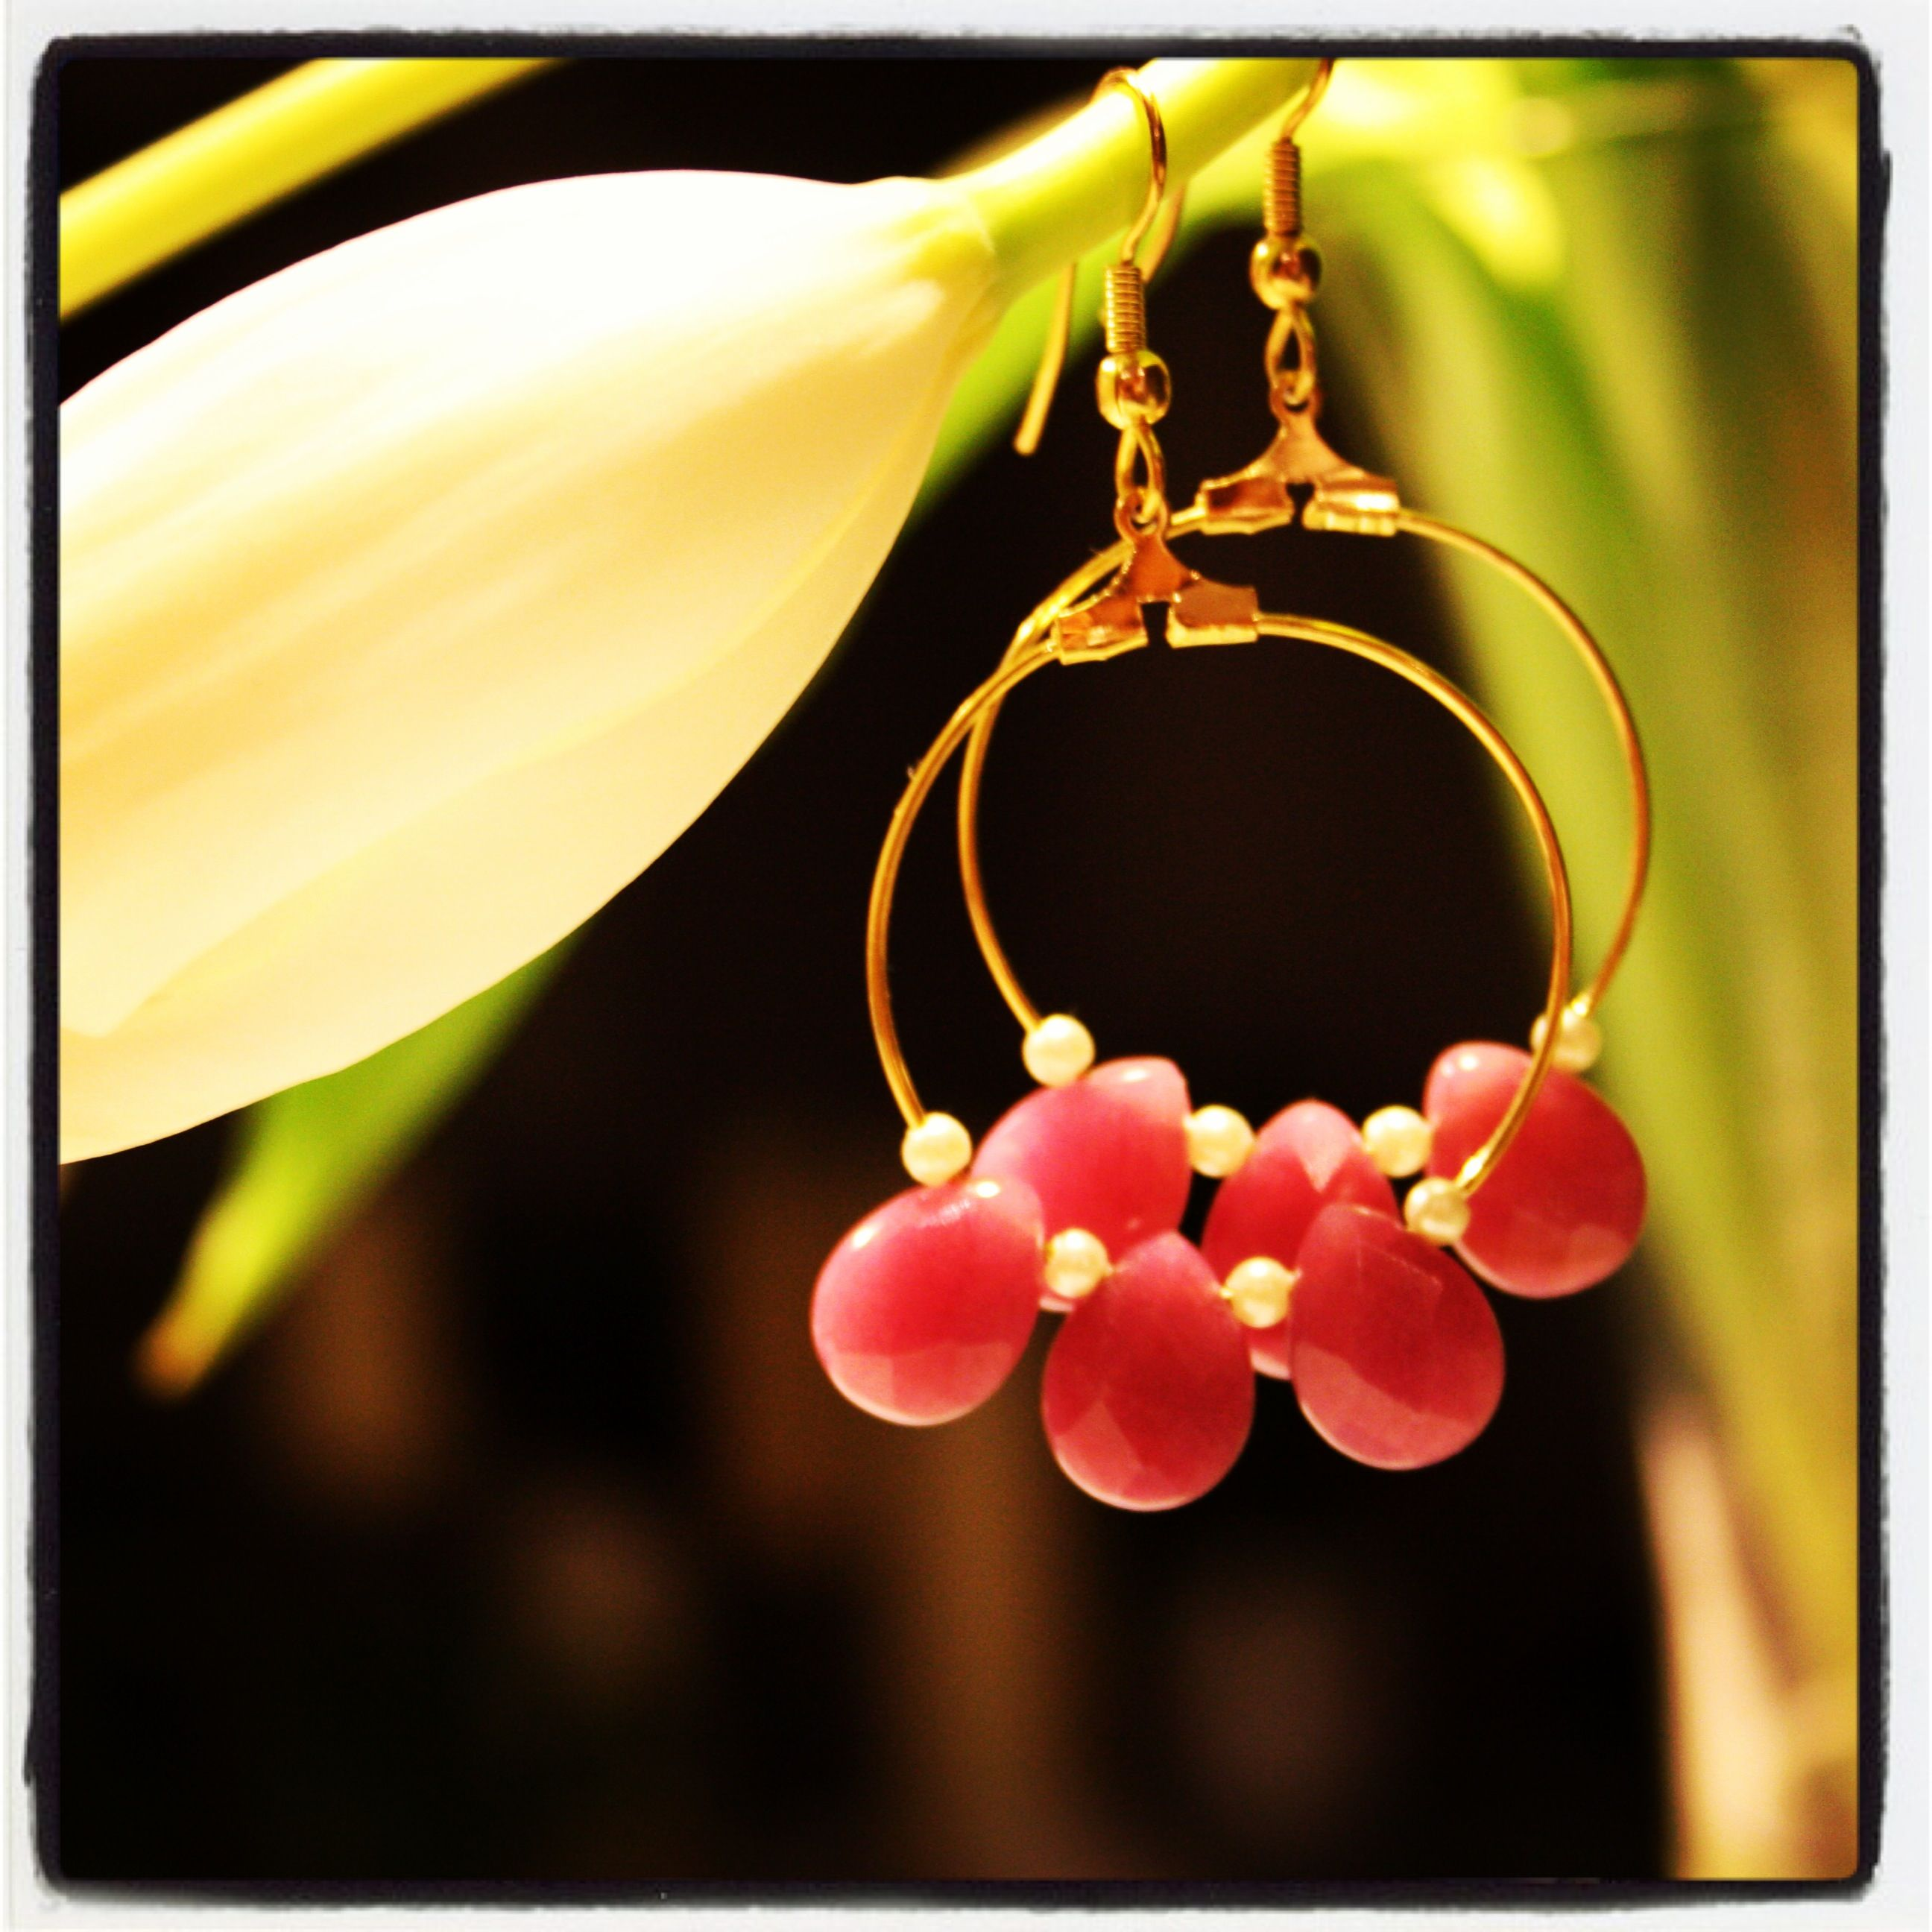 Drop Earrings by LolaRose Jewelry and Accessories on Face Book